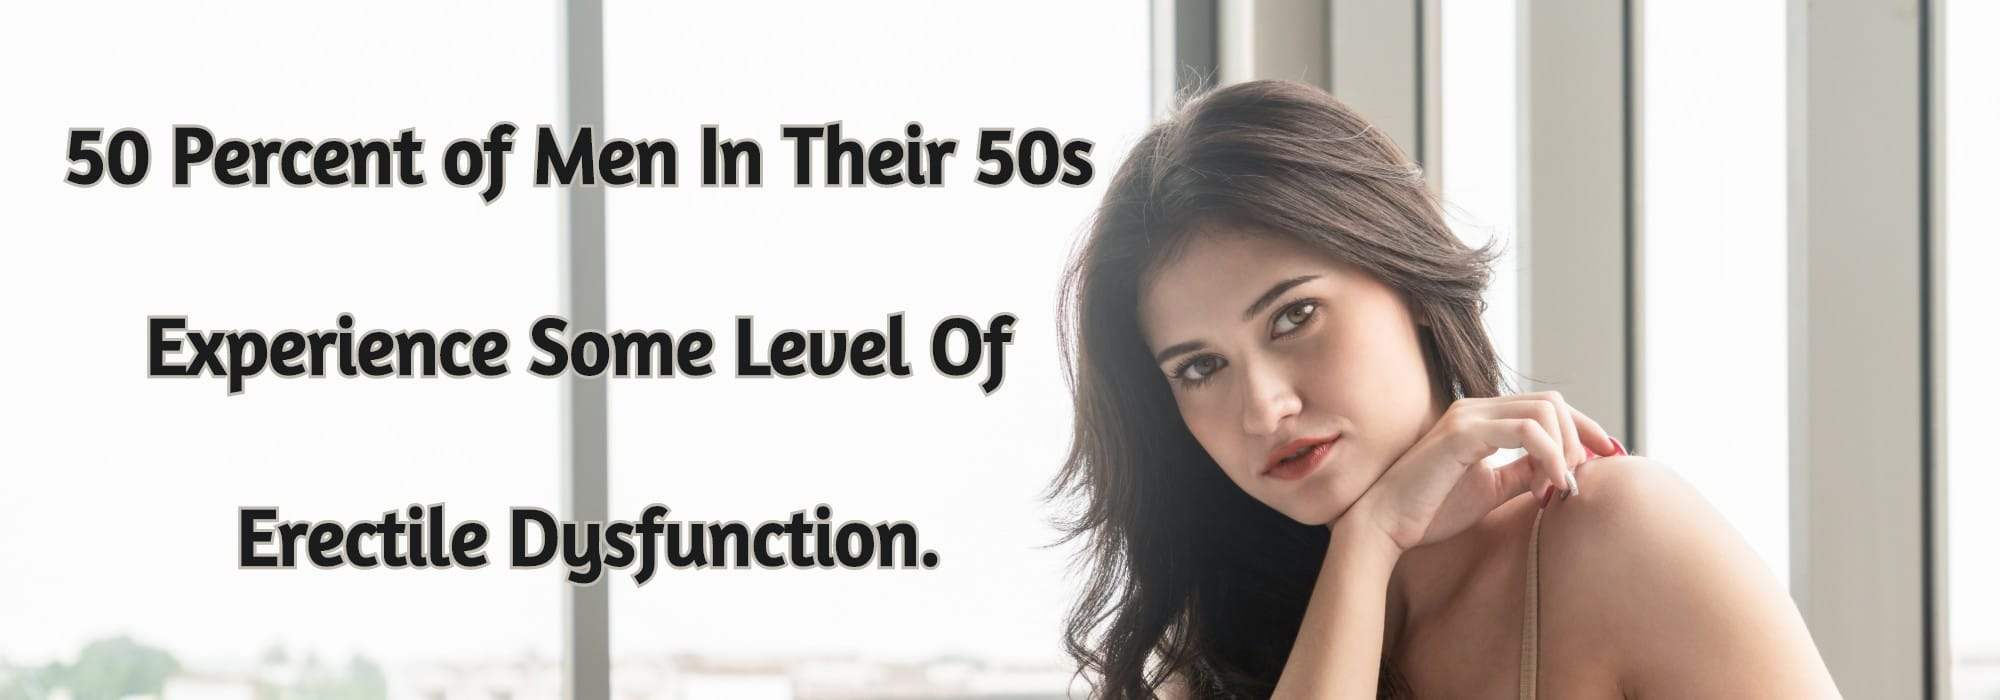 50 Percent of Men In Their 50s Experience Some Level Of Erectile Dysfunction.